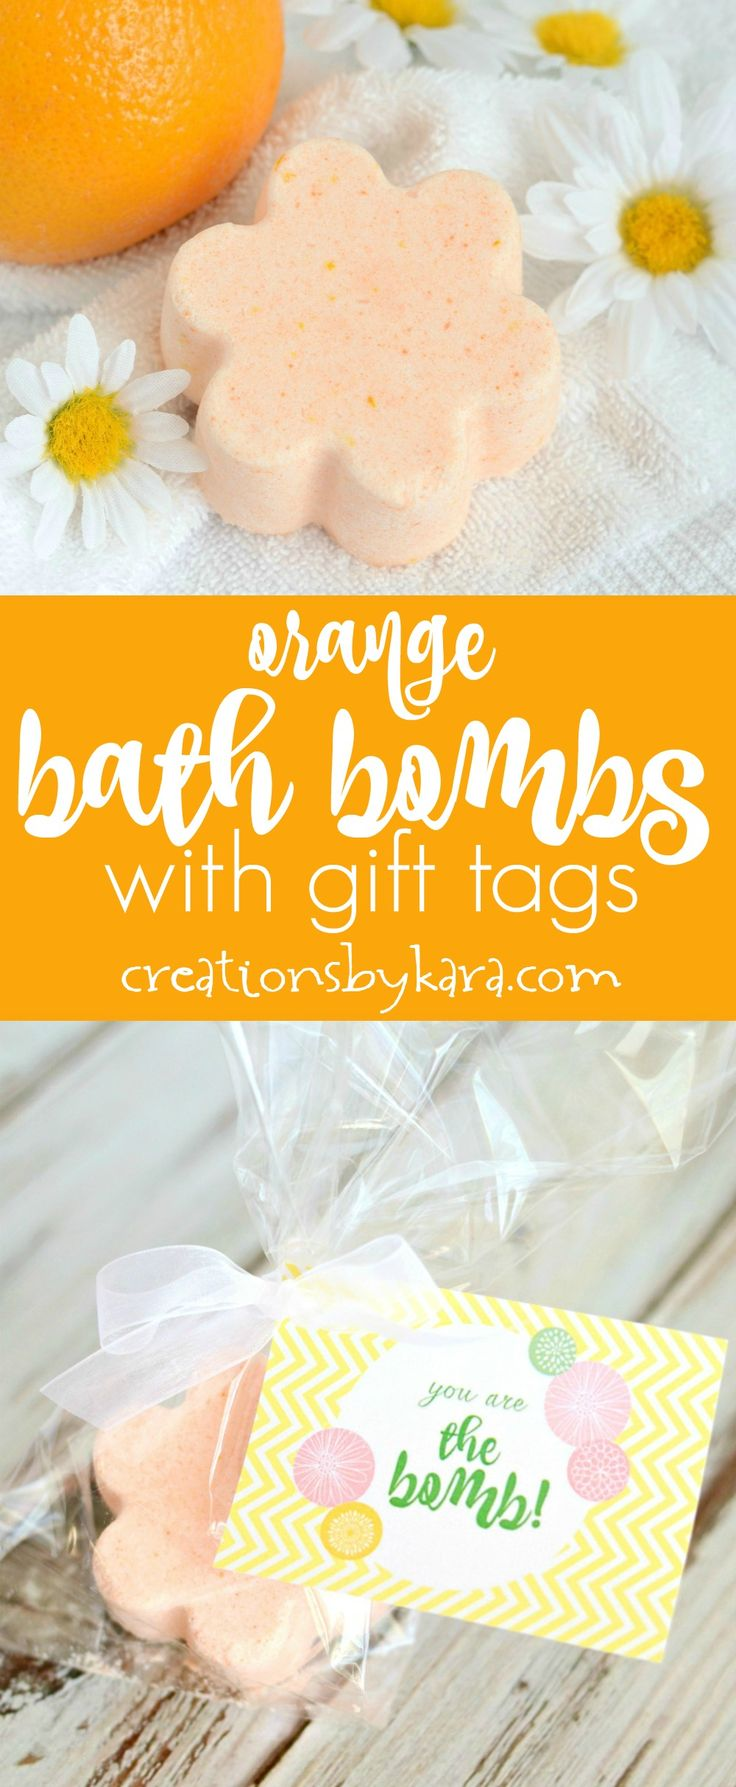 Orange Bath Bombs with free printable gift tags - homemade bath bombs make great gifts!